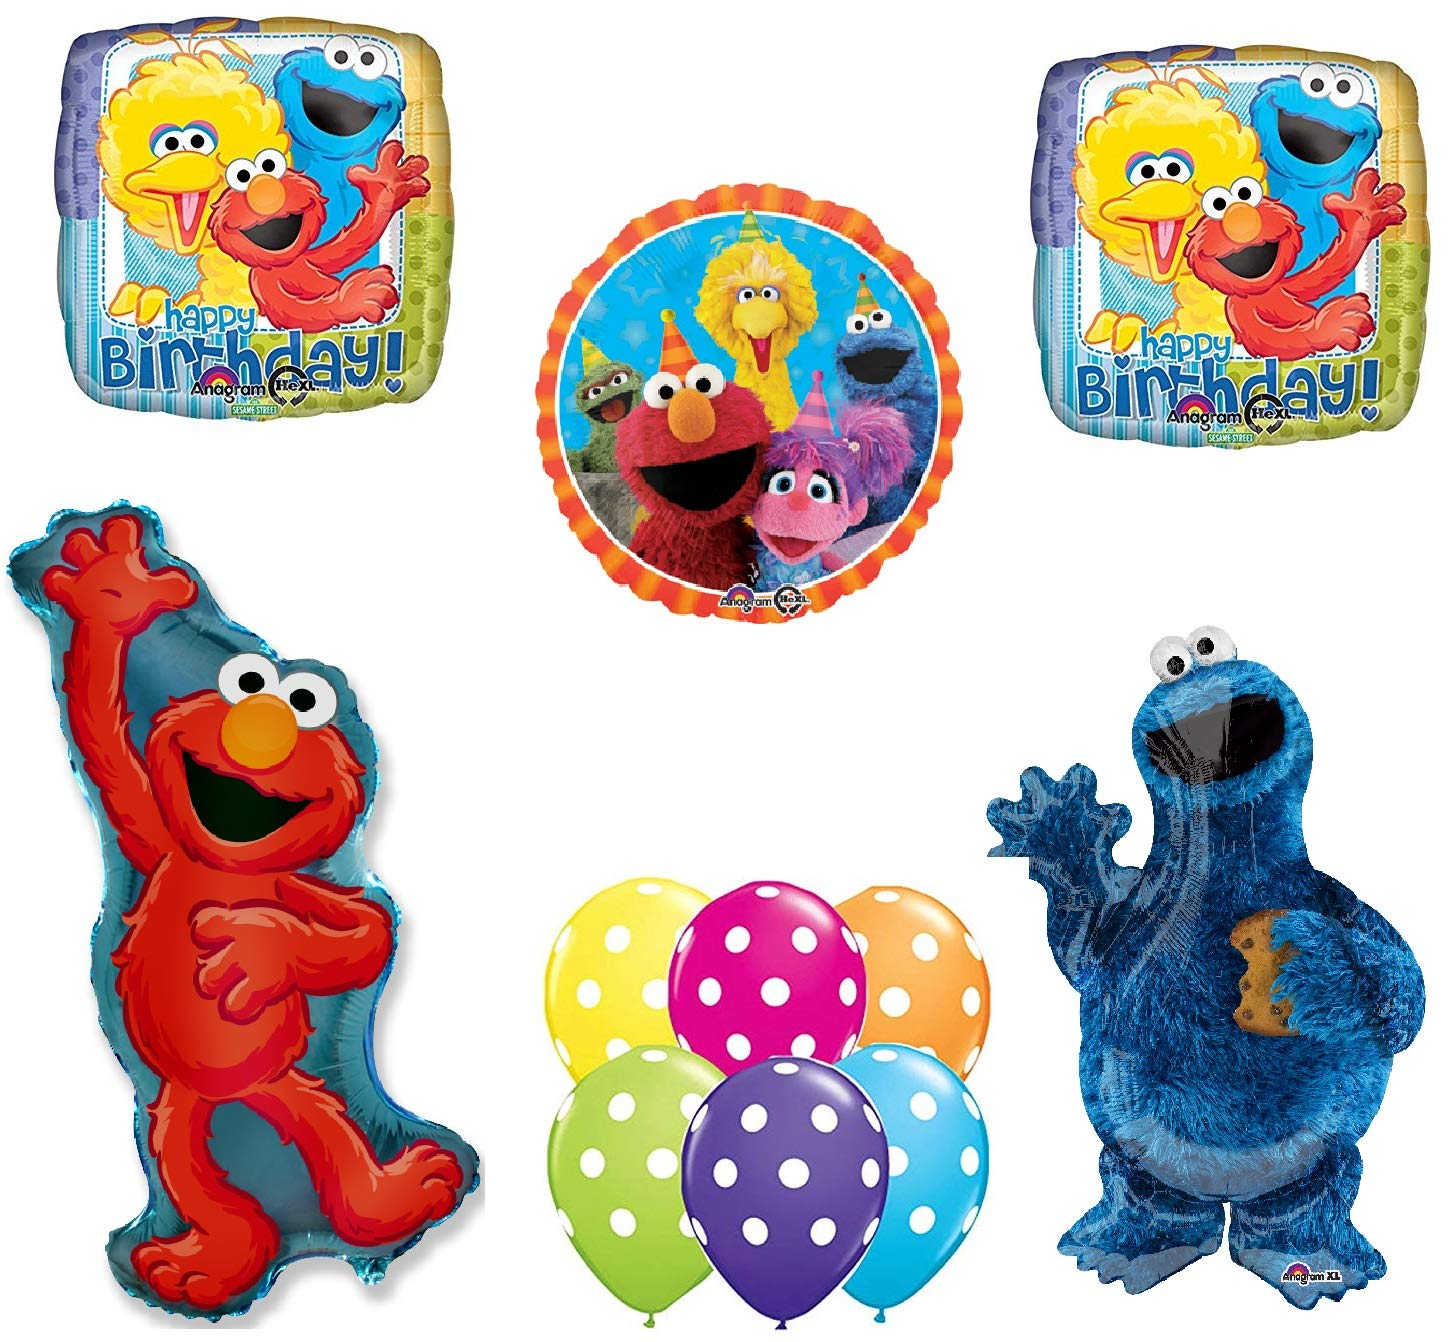 Sesame Street Elmo Cookie Monster Happy Birthday Party Balloons Decorations.   B01DE775P8